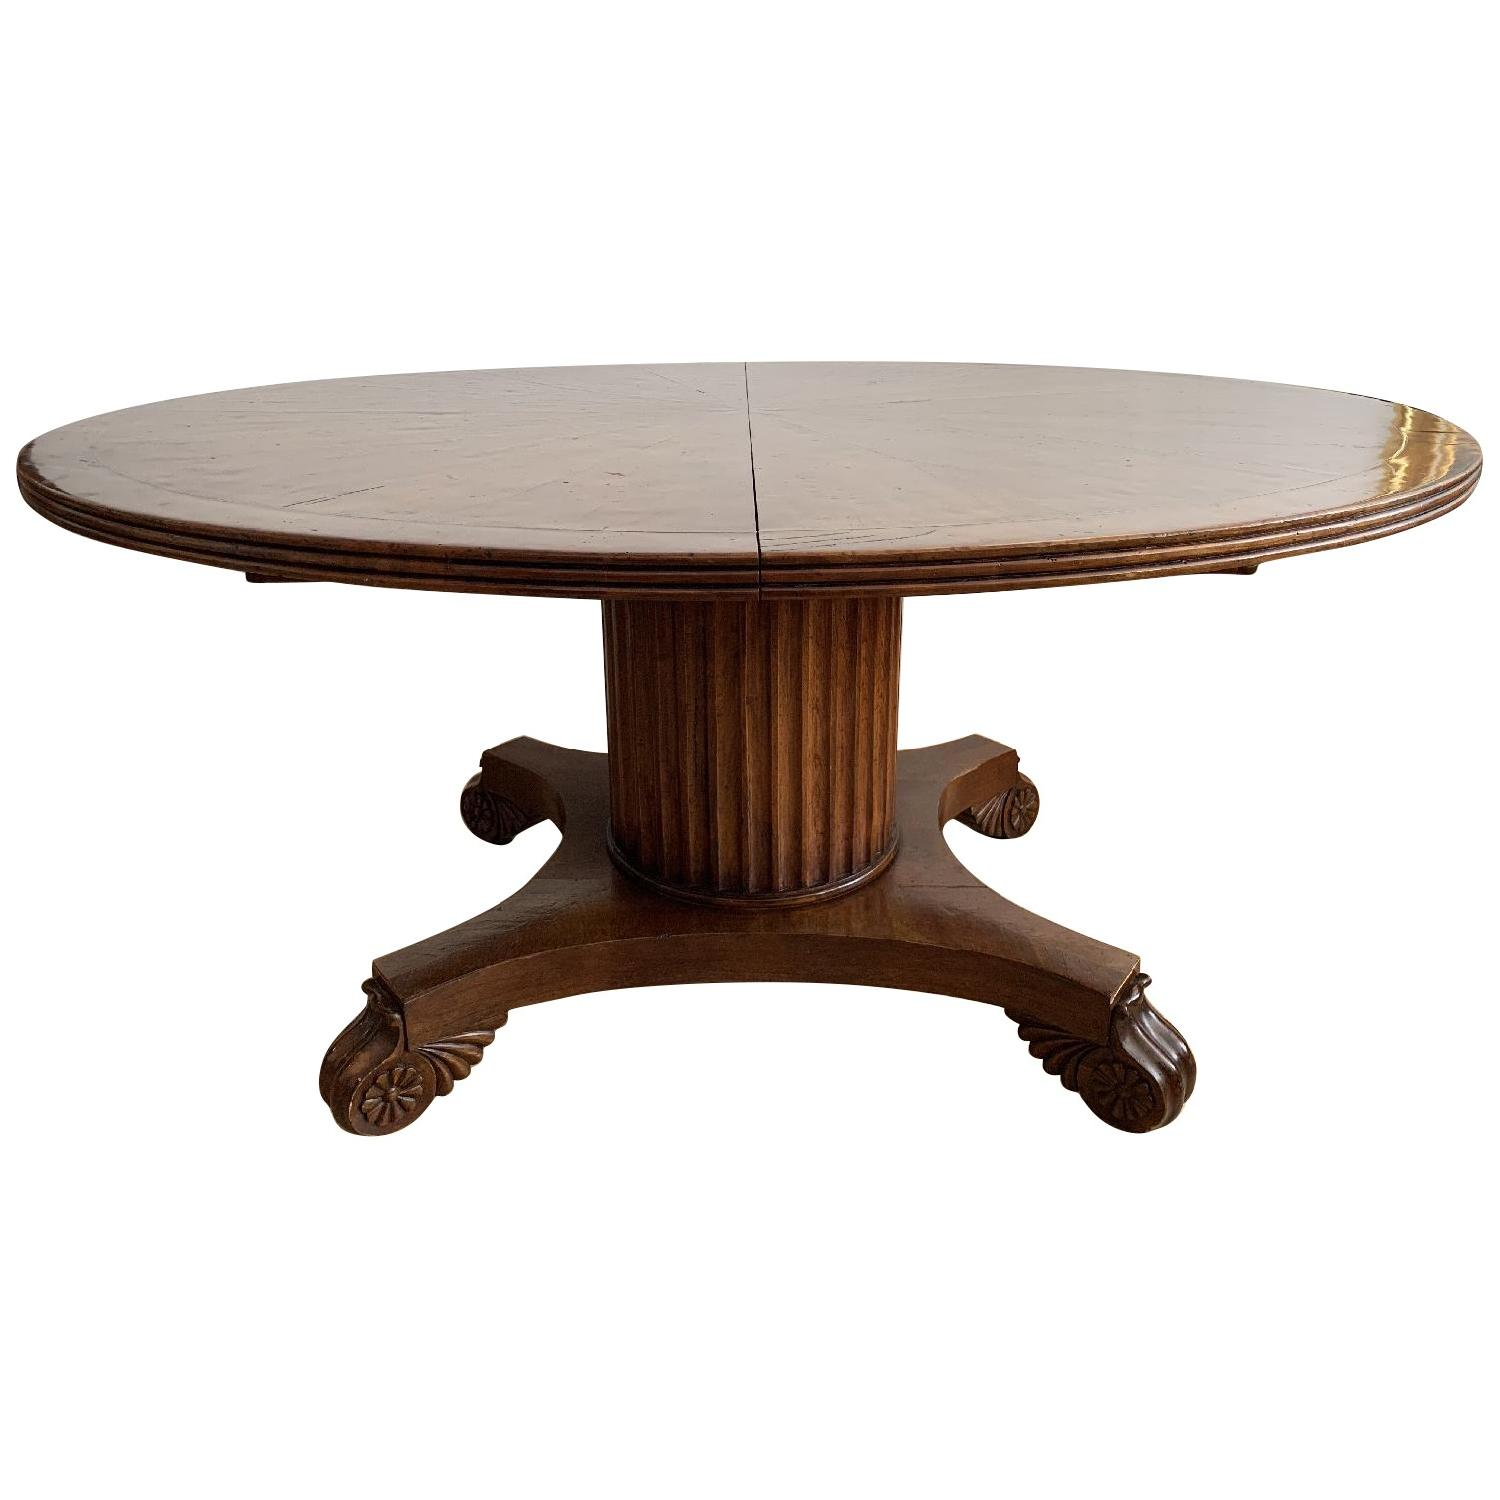 Round Cherry Dining Table w/ 2 Extensions